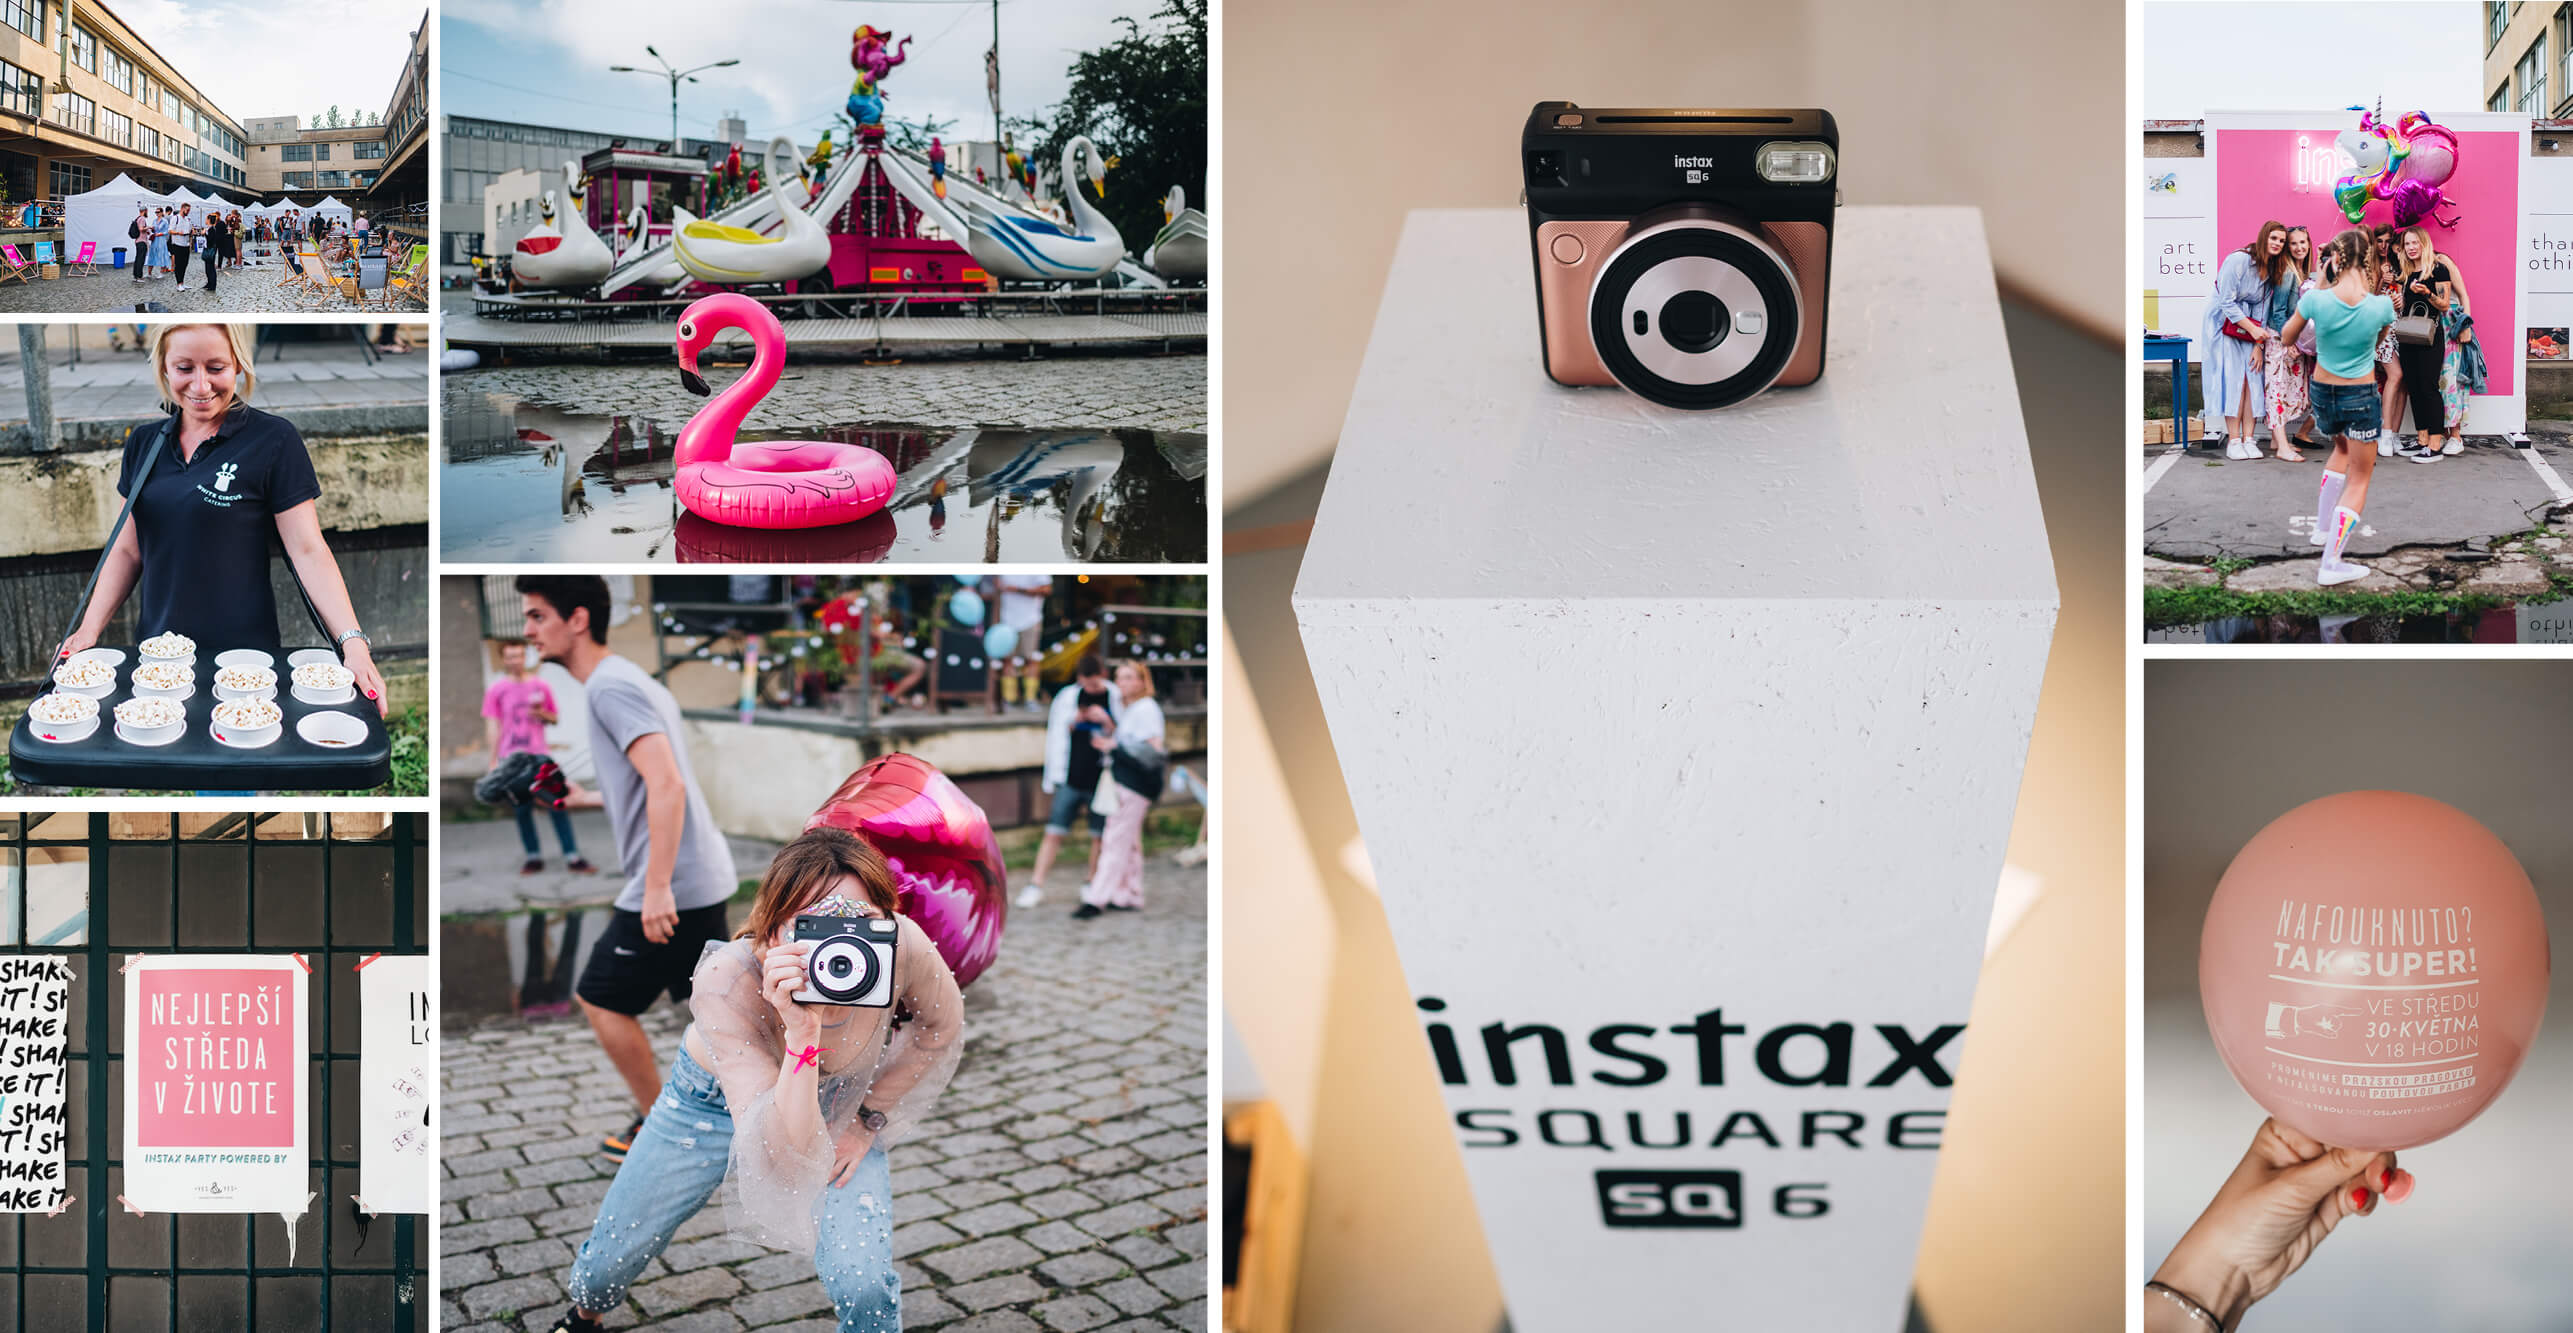 INSTAX party